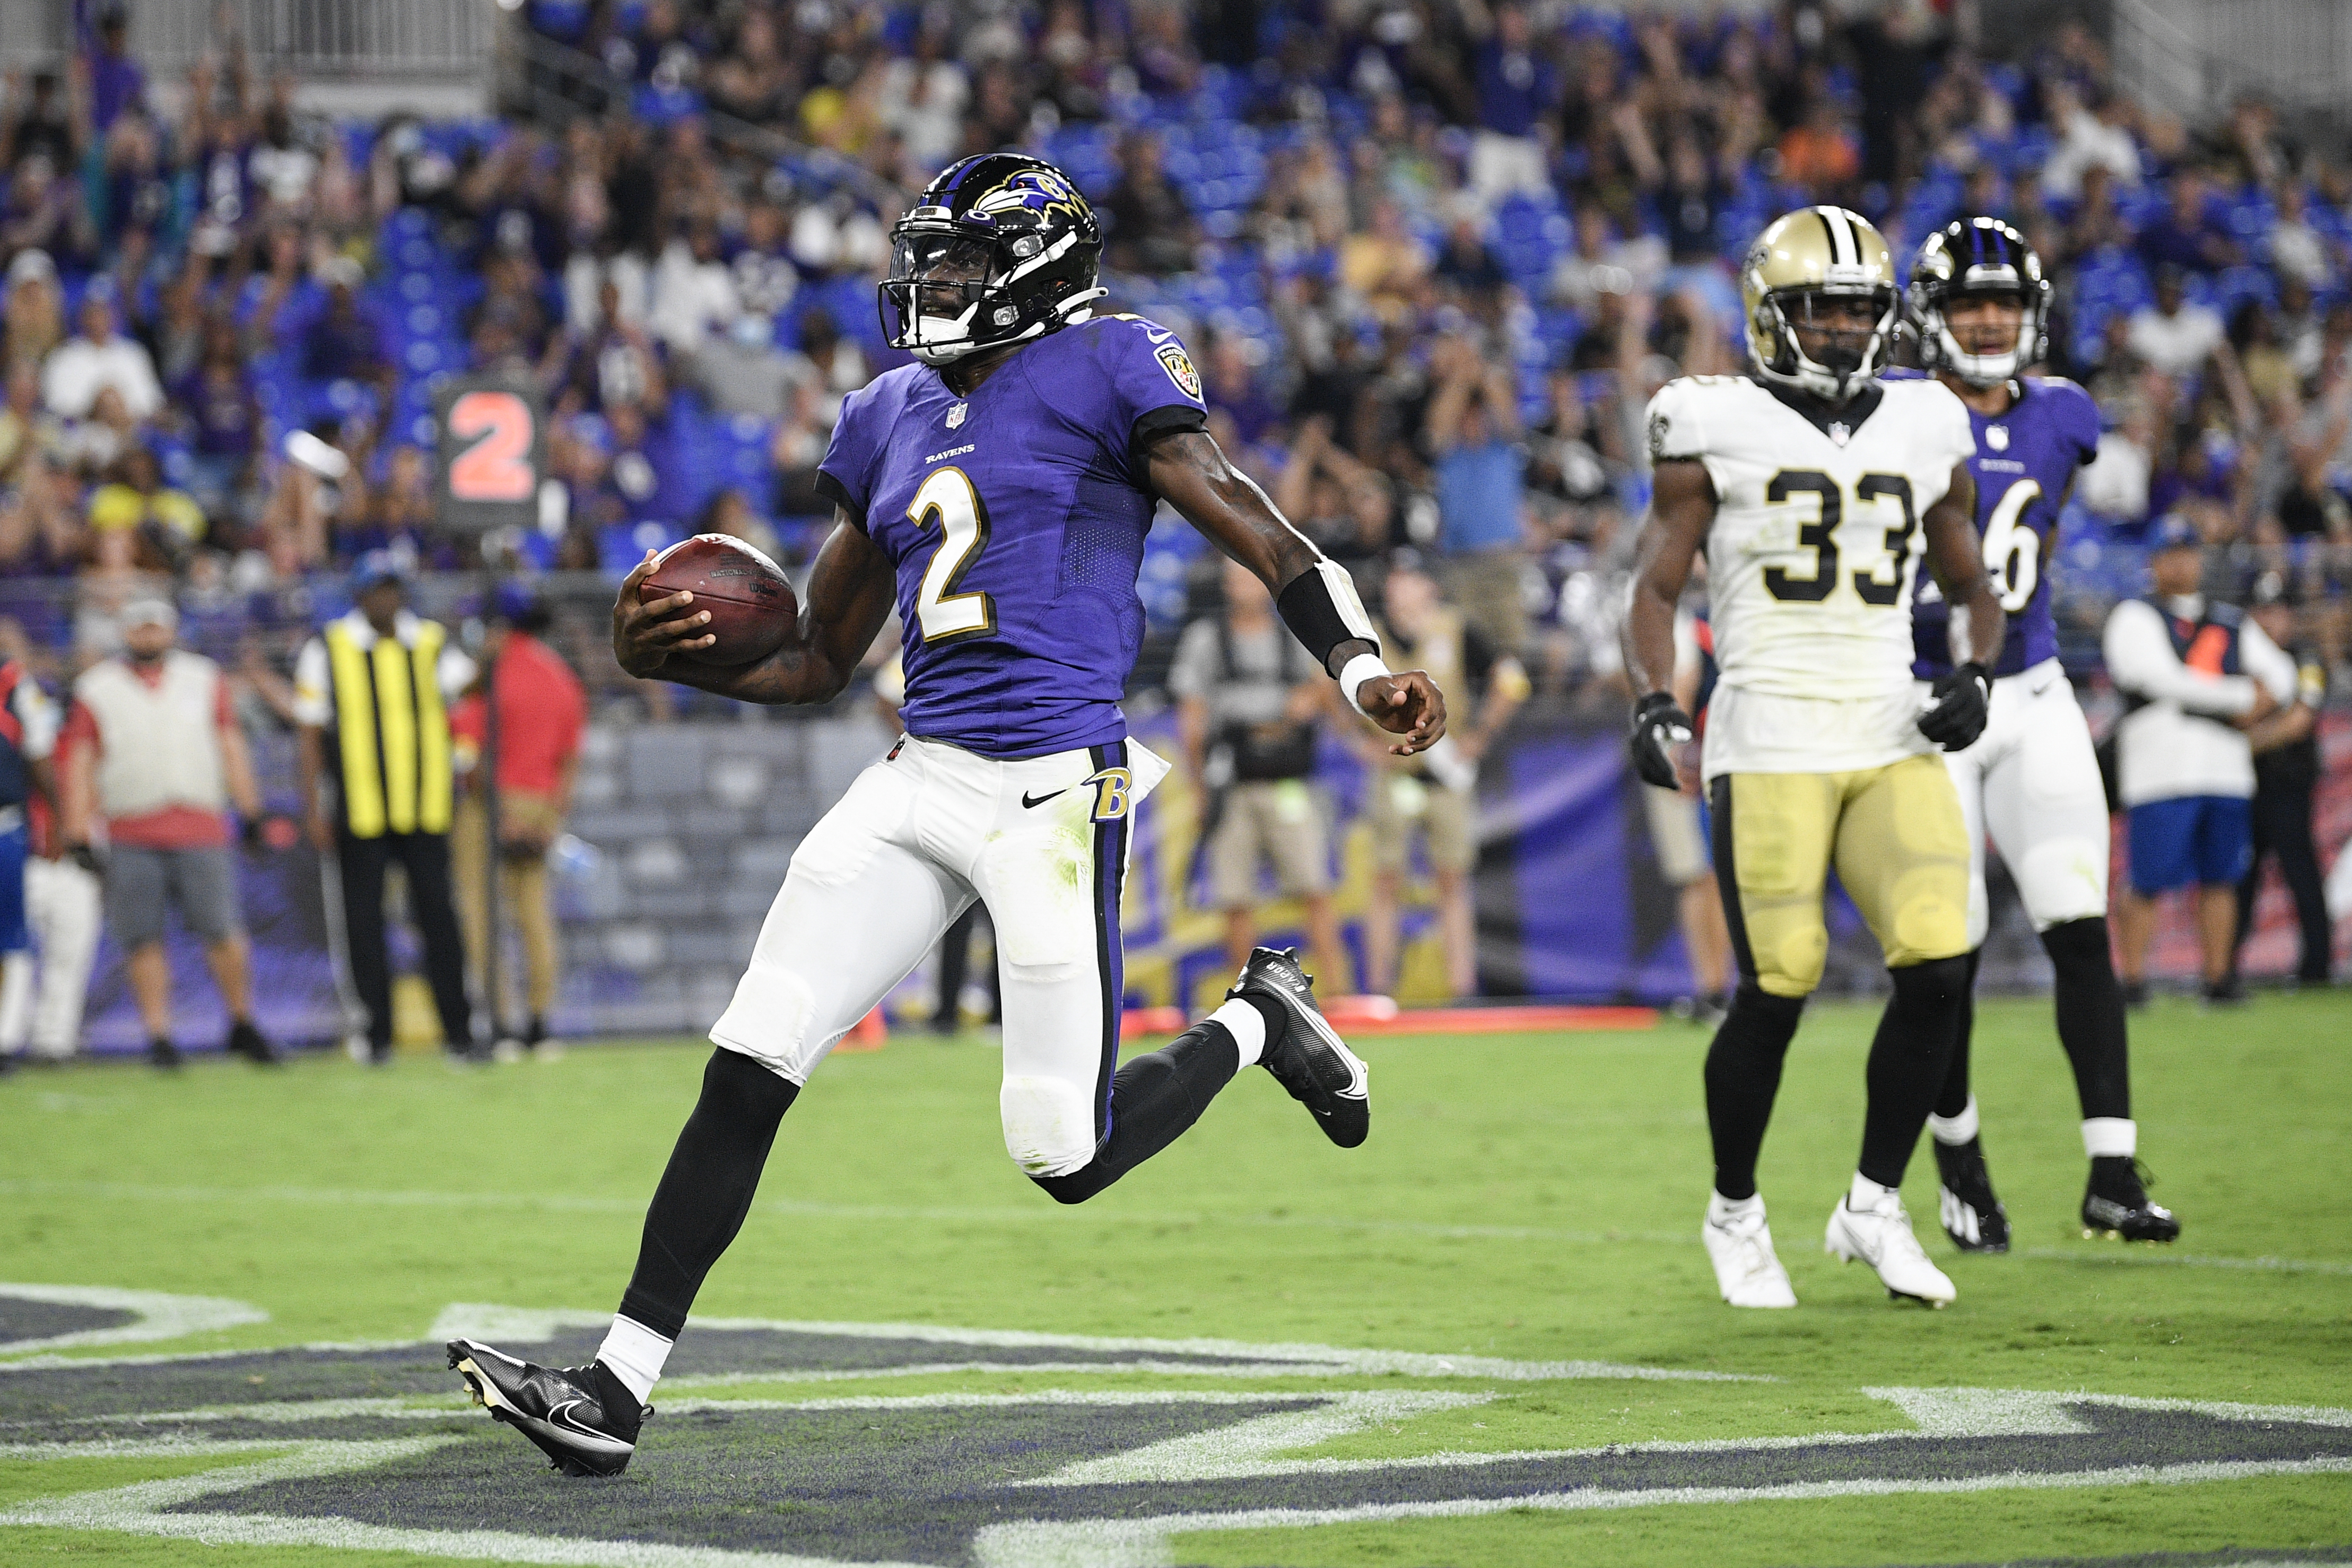 Baltimore Ravens quarterback Tyler Huntley (2) scores a touchdown on a keeper against the New Orleans Saints.